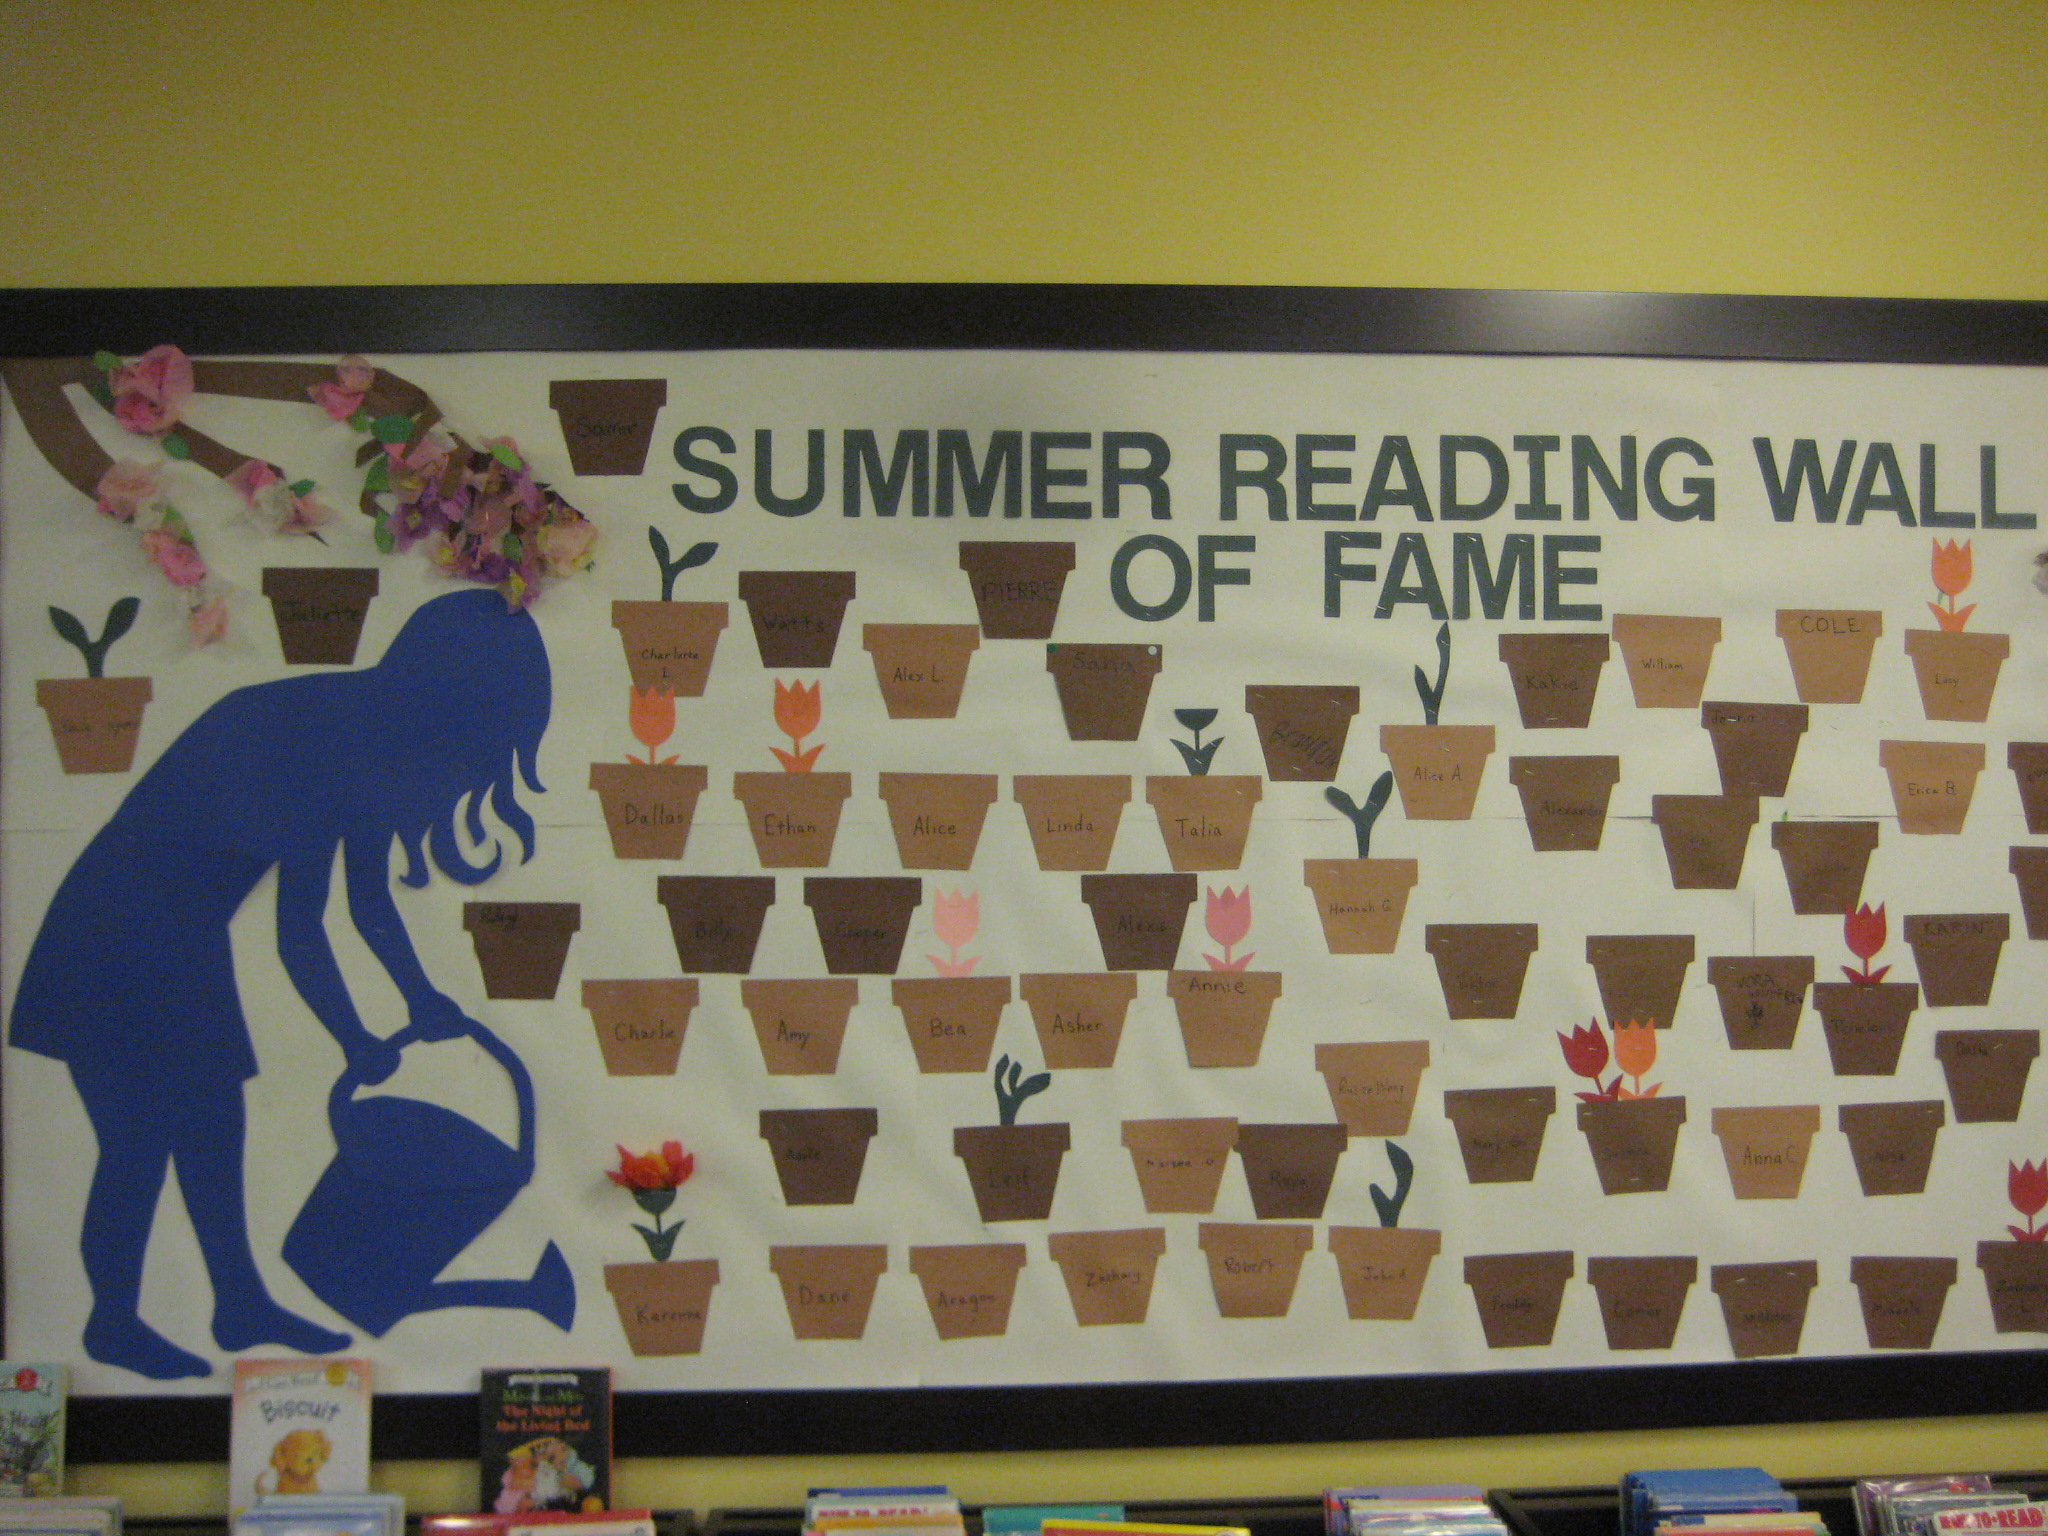 Summer Reading Wall of Fame